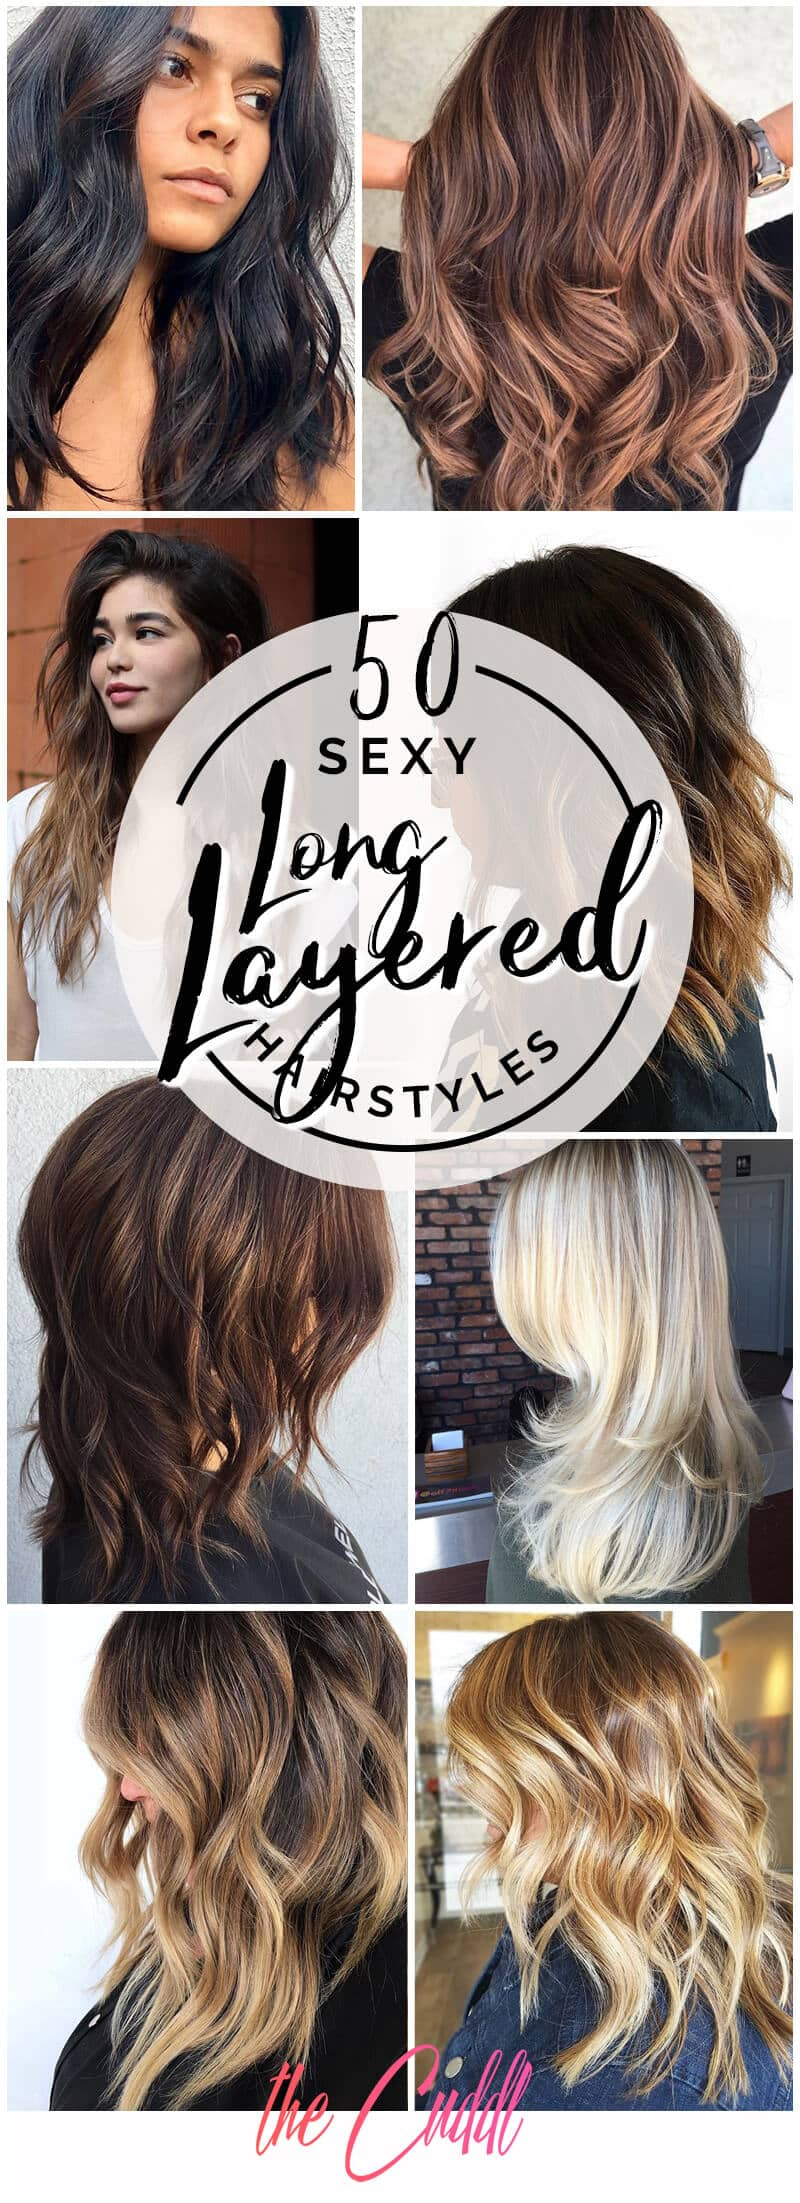 11 Sexy Long Layered Hair Ideas to Create Effortless Style in 11